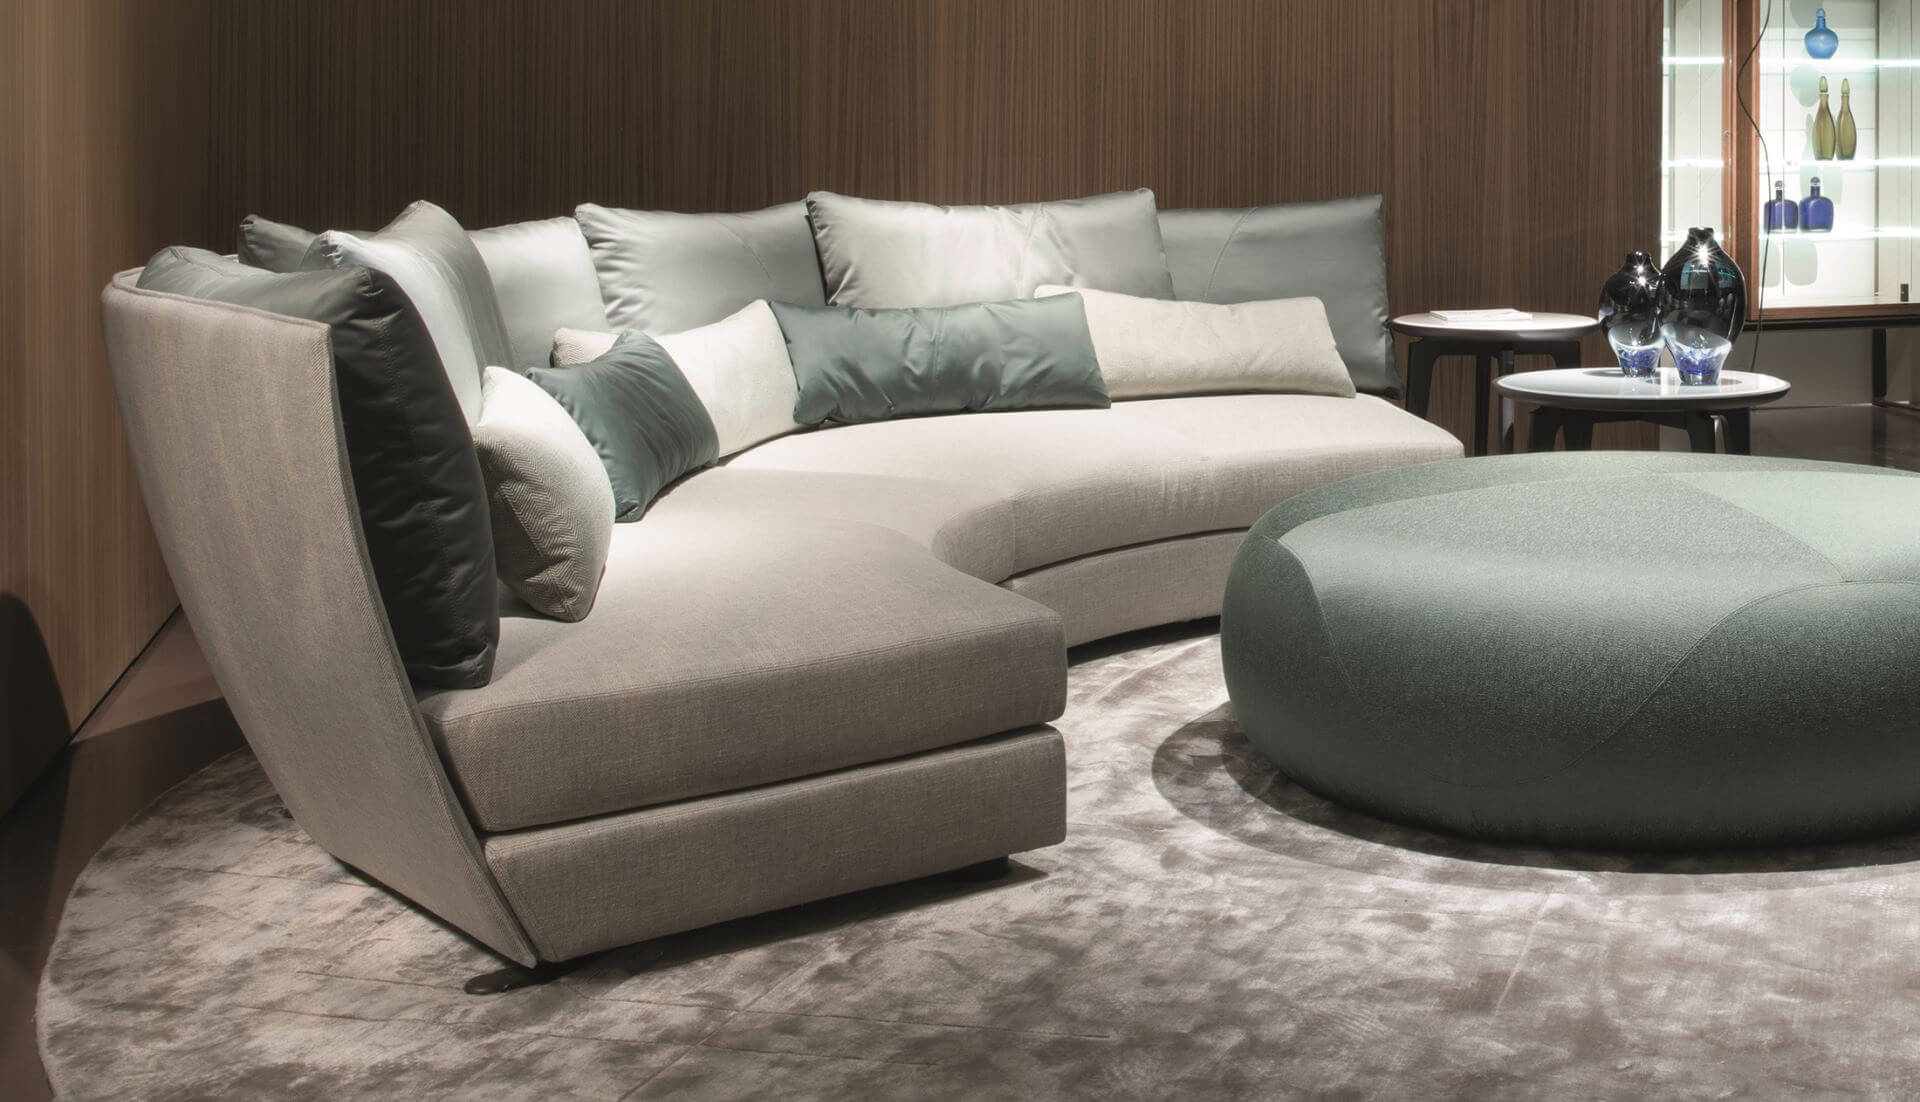 Giorgetti Dhow Curved Modular Sofa – Dream Design With Regard To Dream Navy 2 Piece Modular Sofas (View 1 of 15)